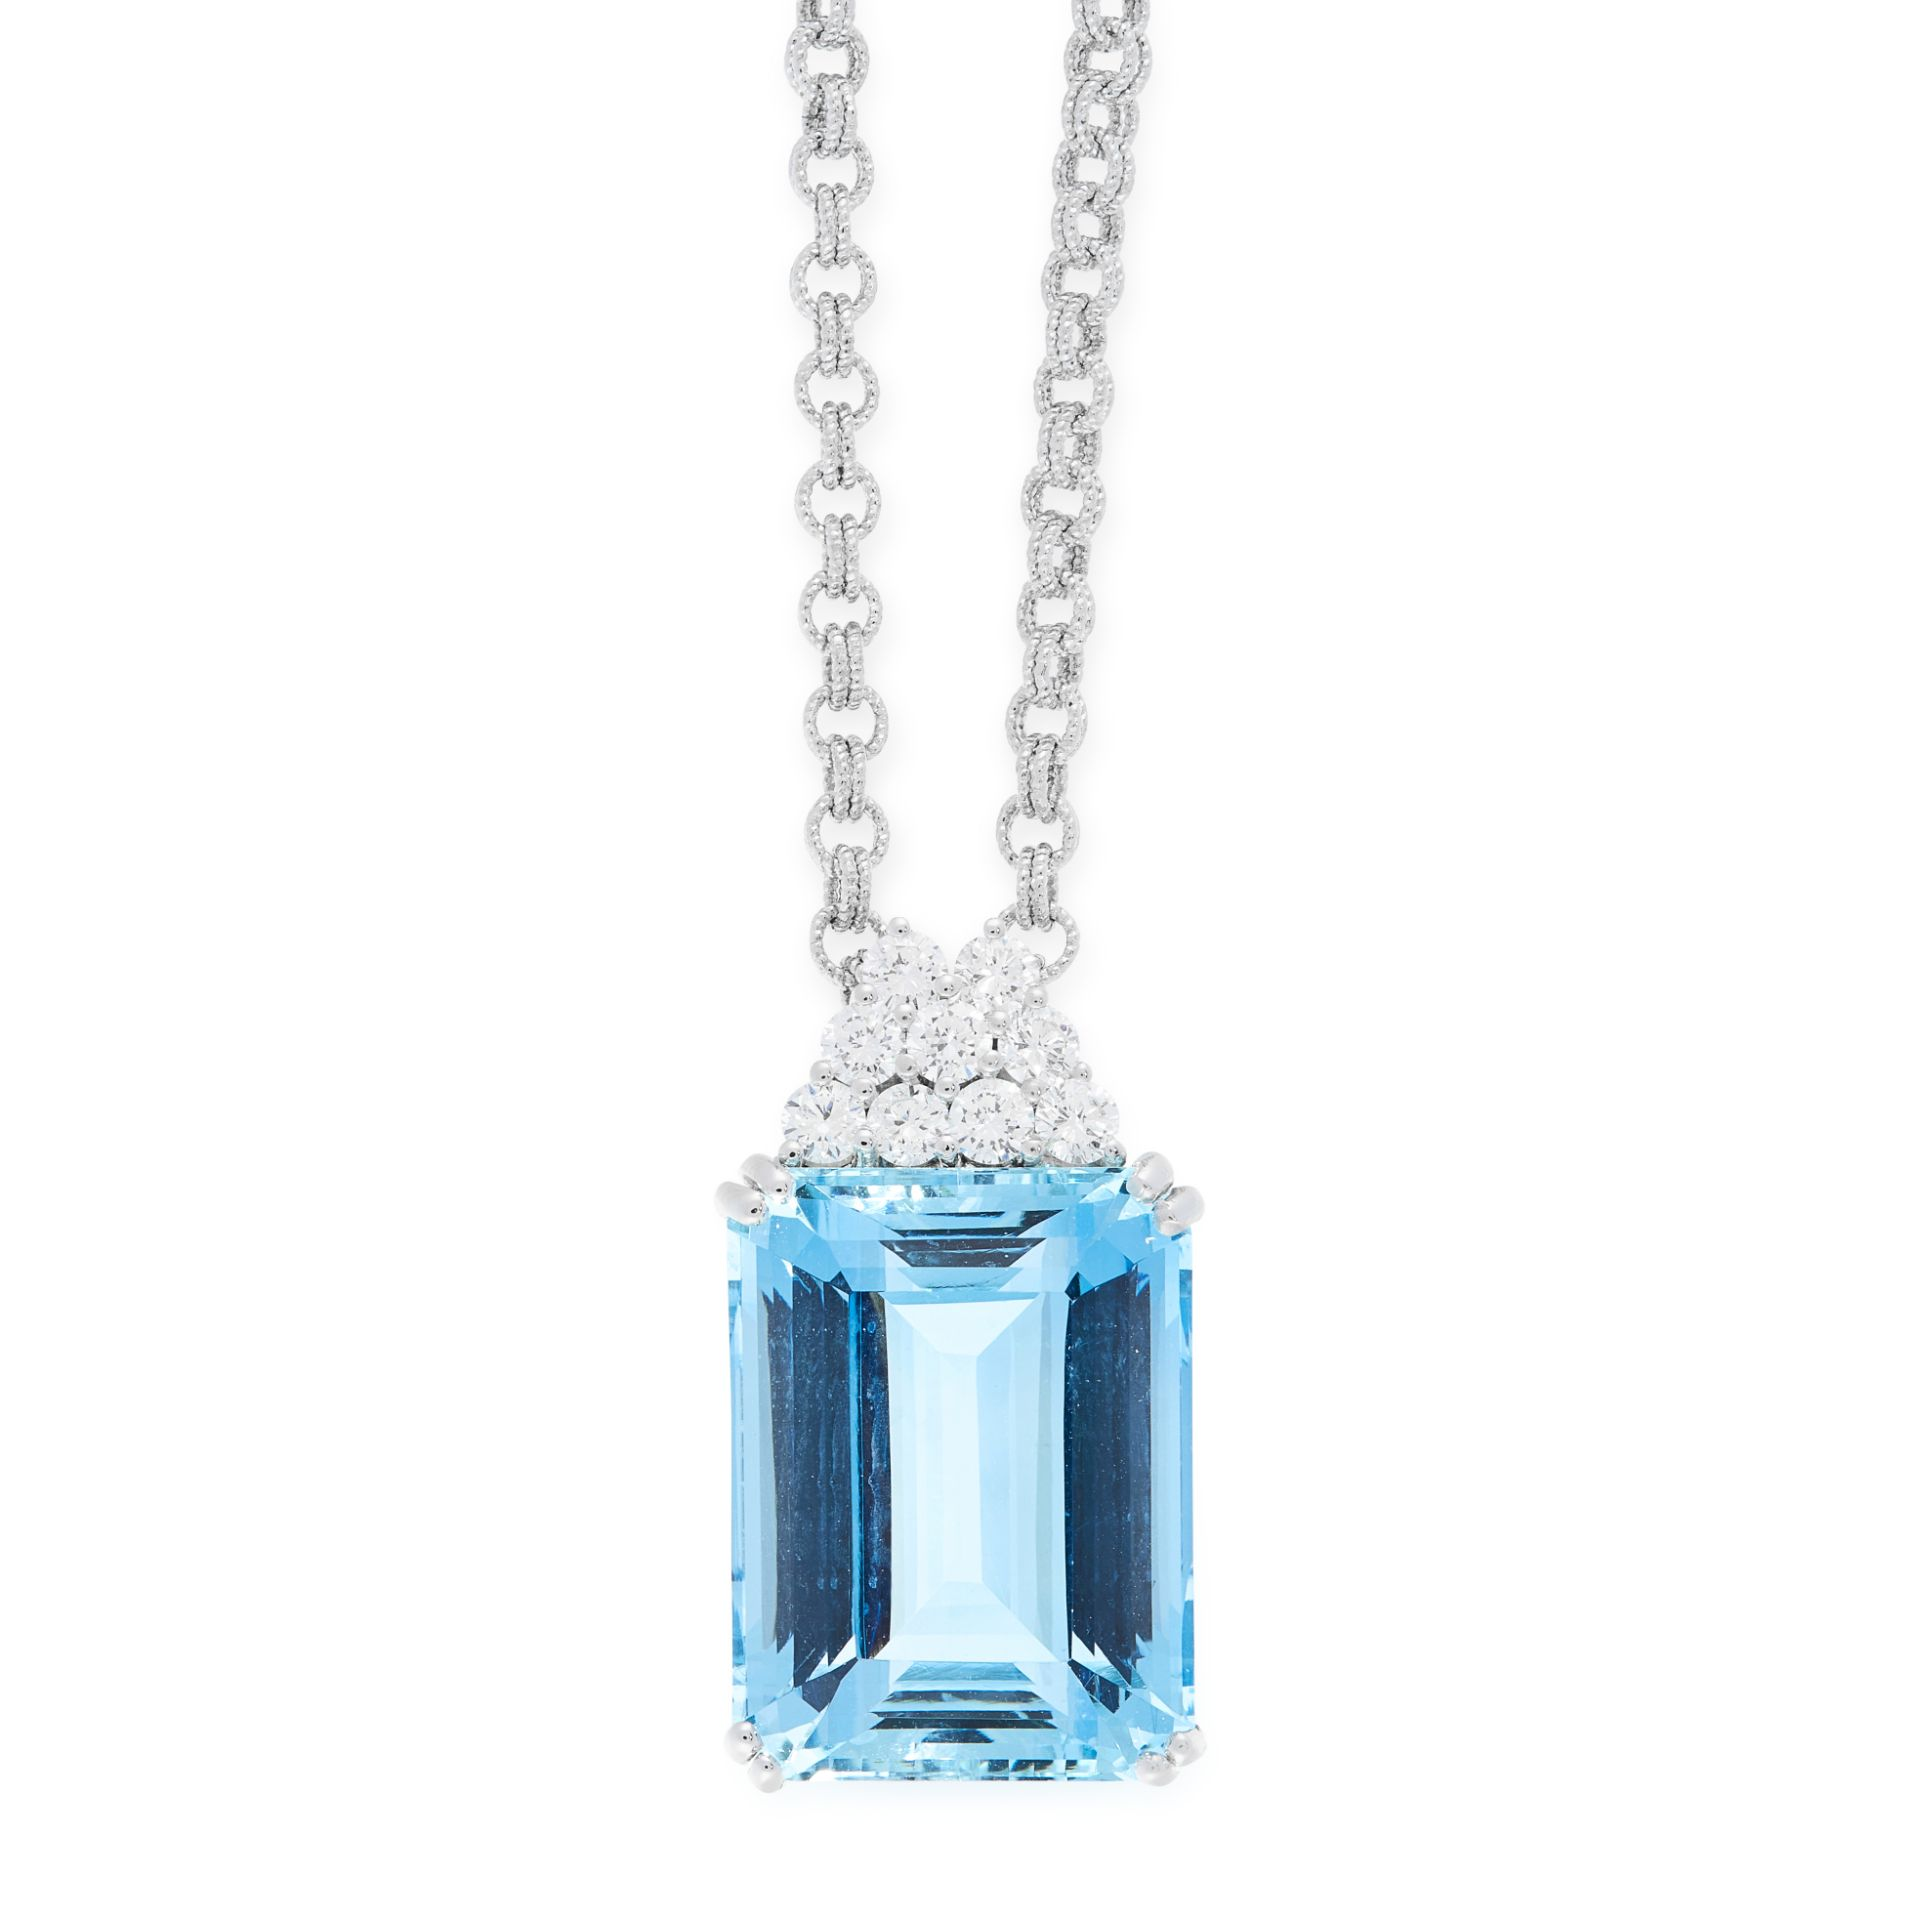 AN AQUAMARINE AND DIAMOND PENDANT AND CHAIN in 18ct white gold, set with an emerald cut aquamarine